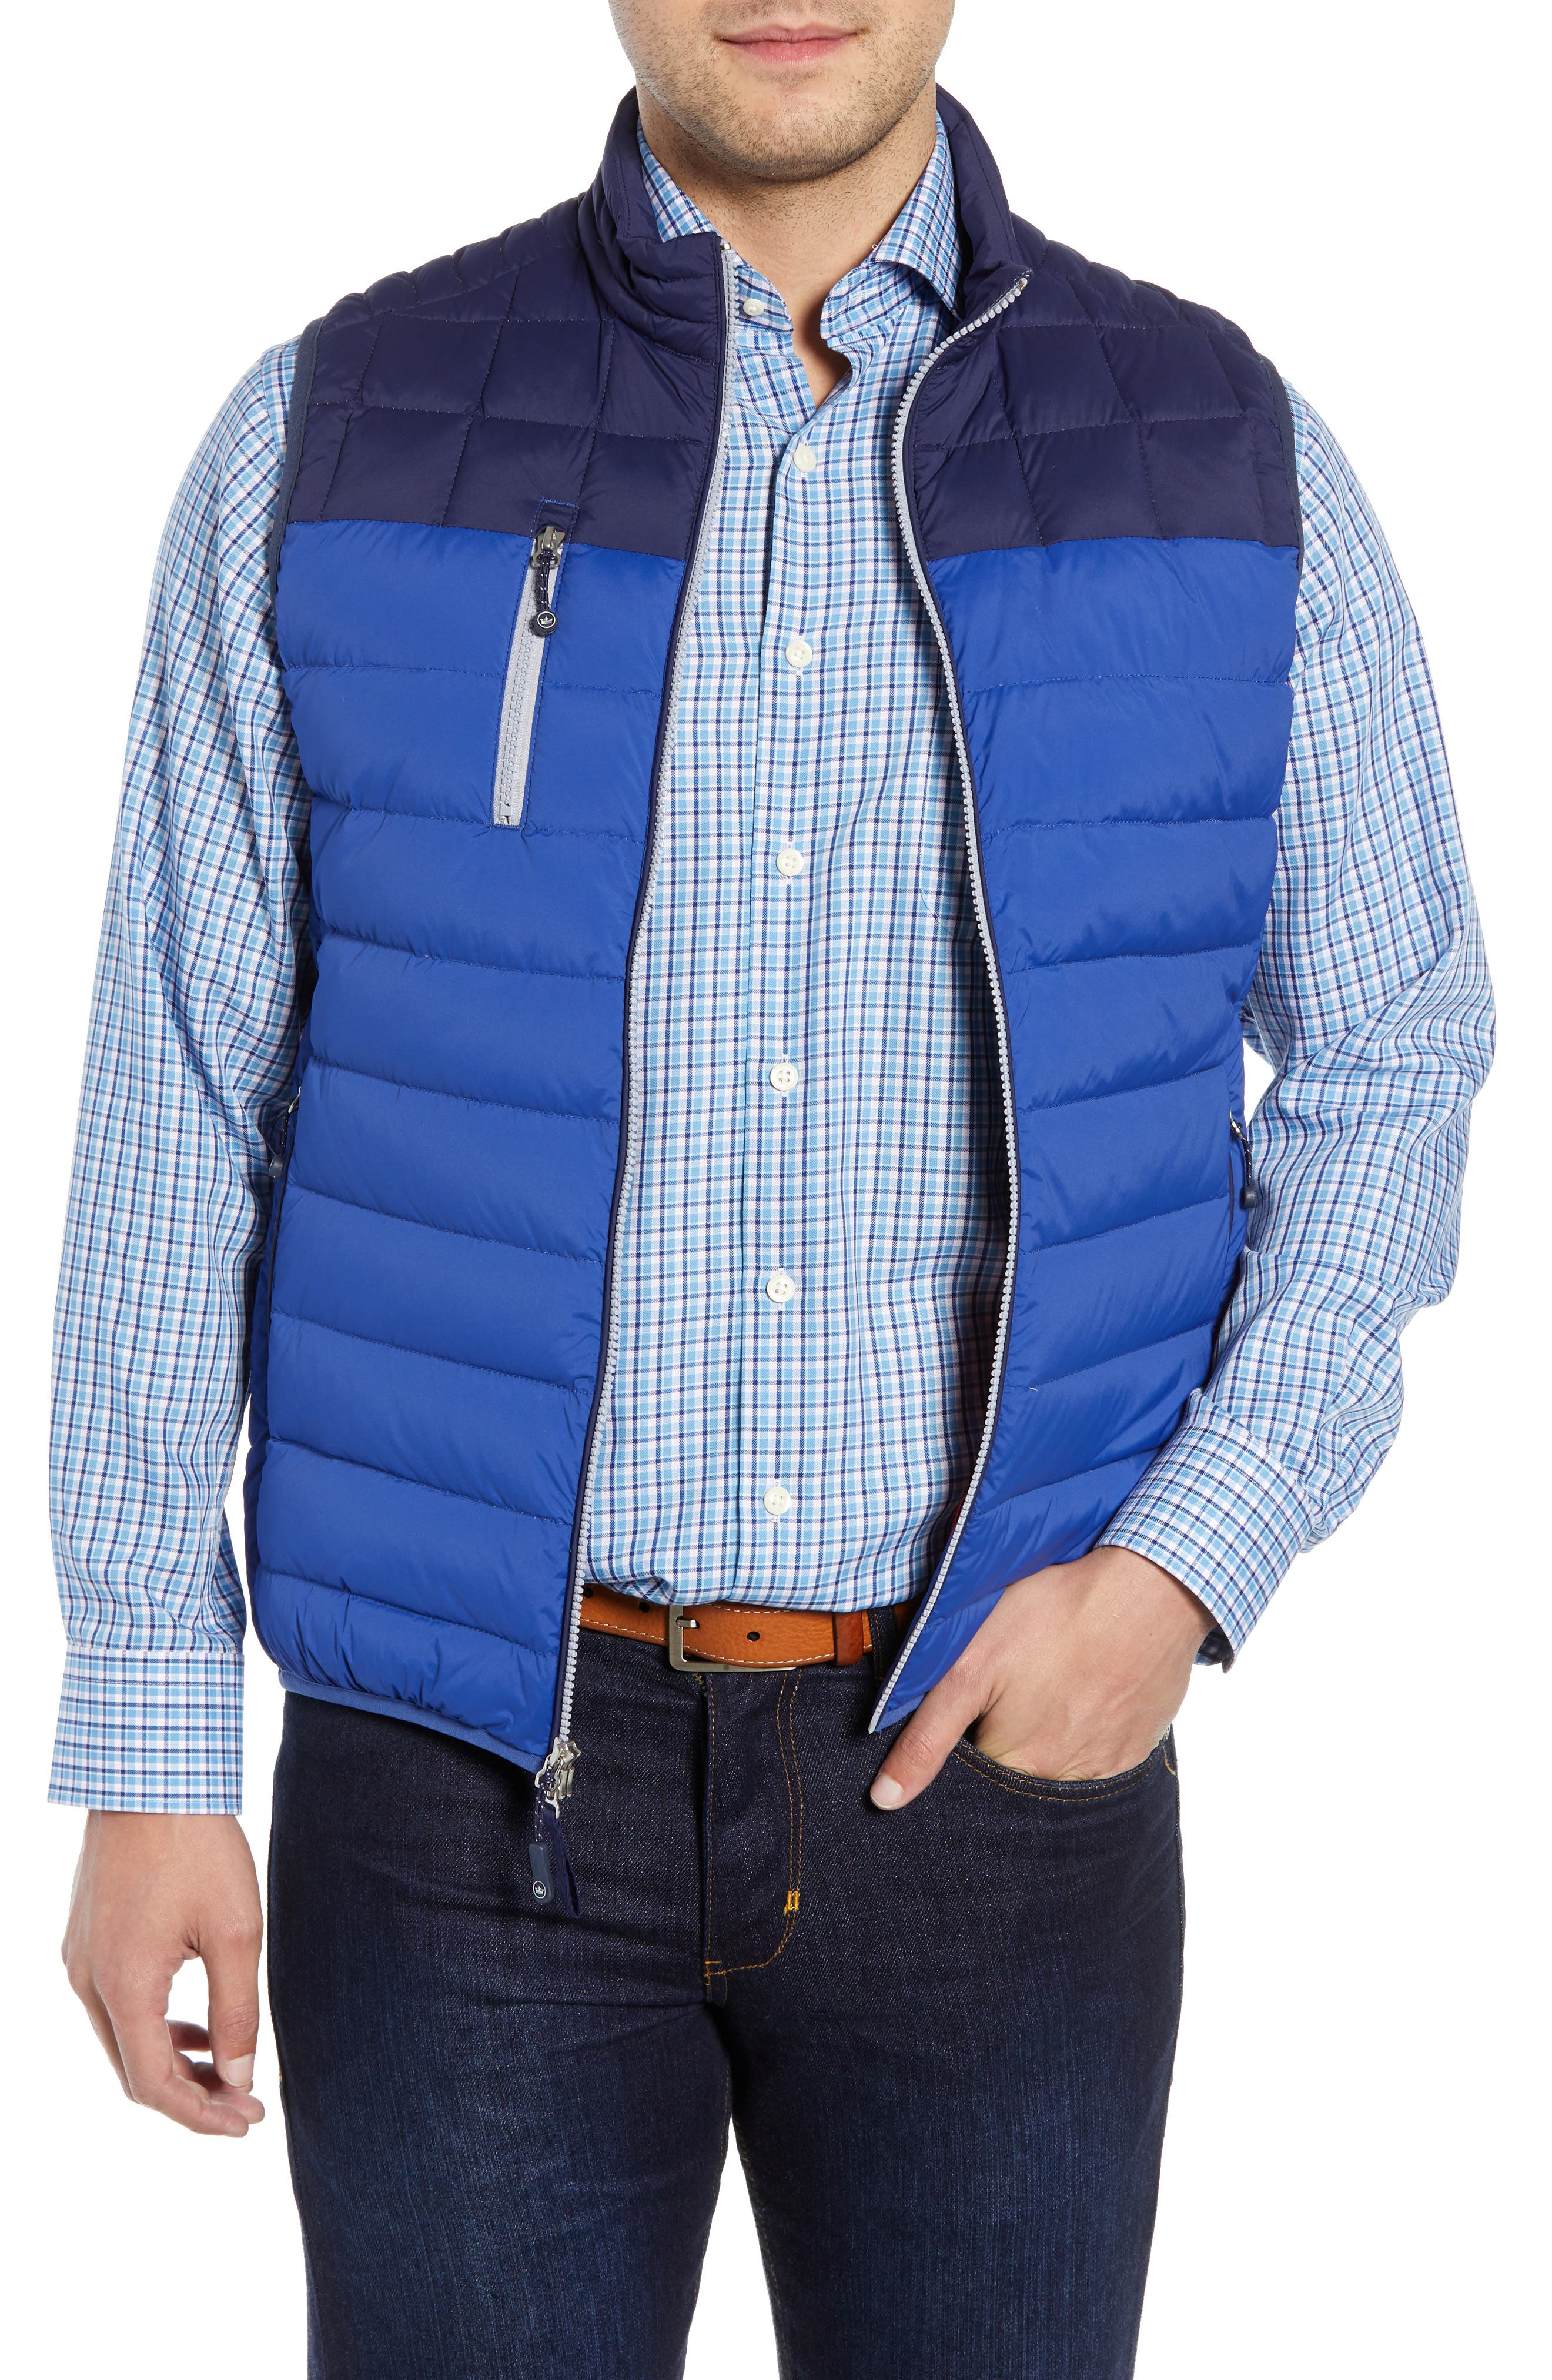 PETER MILLAR, Sail Classic Fit Puffer Vest, Main thumbnail 1, color, SAIL